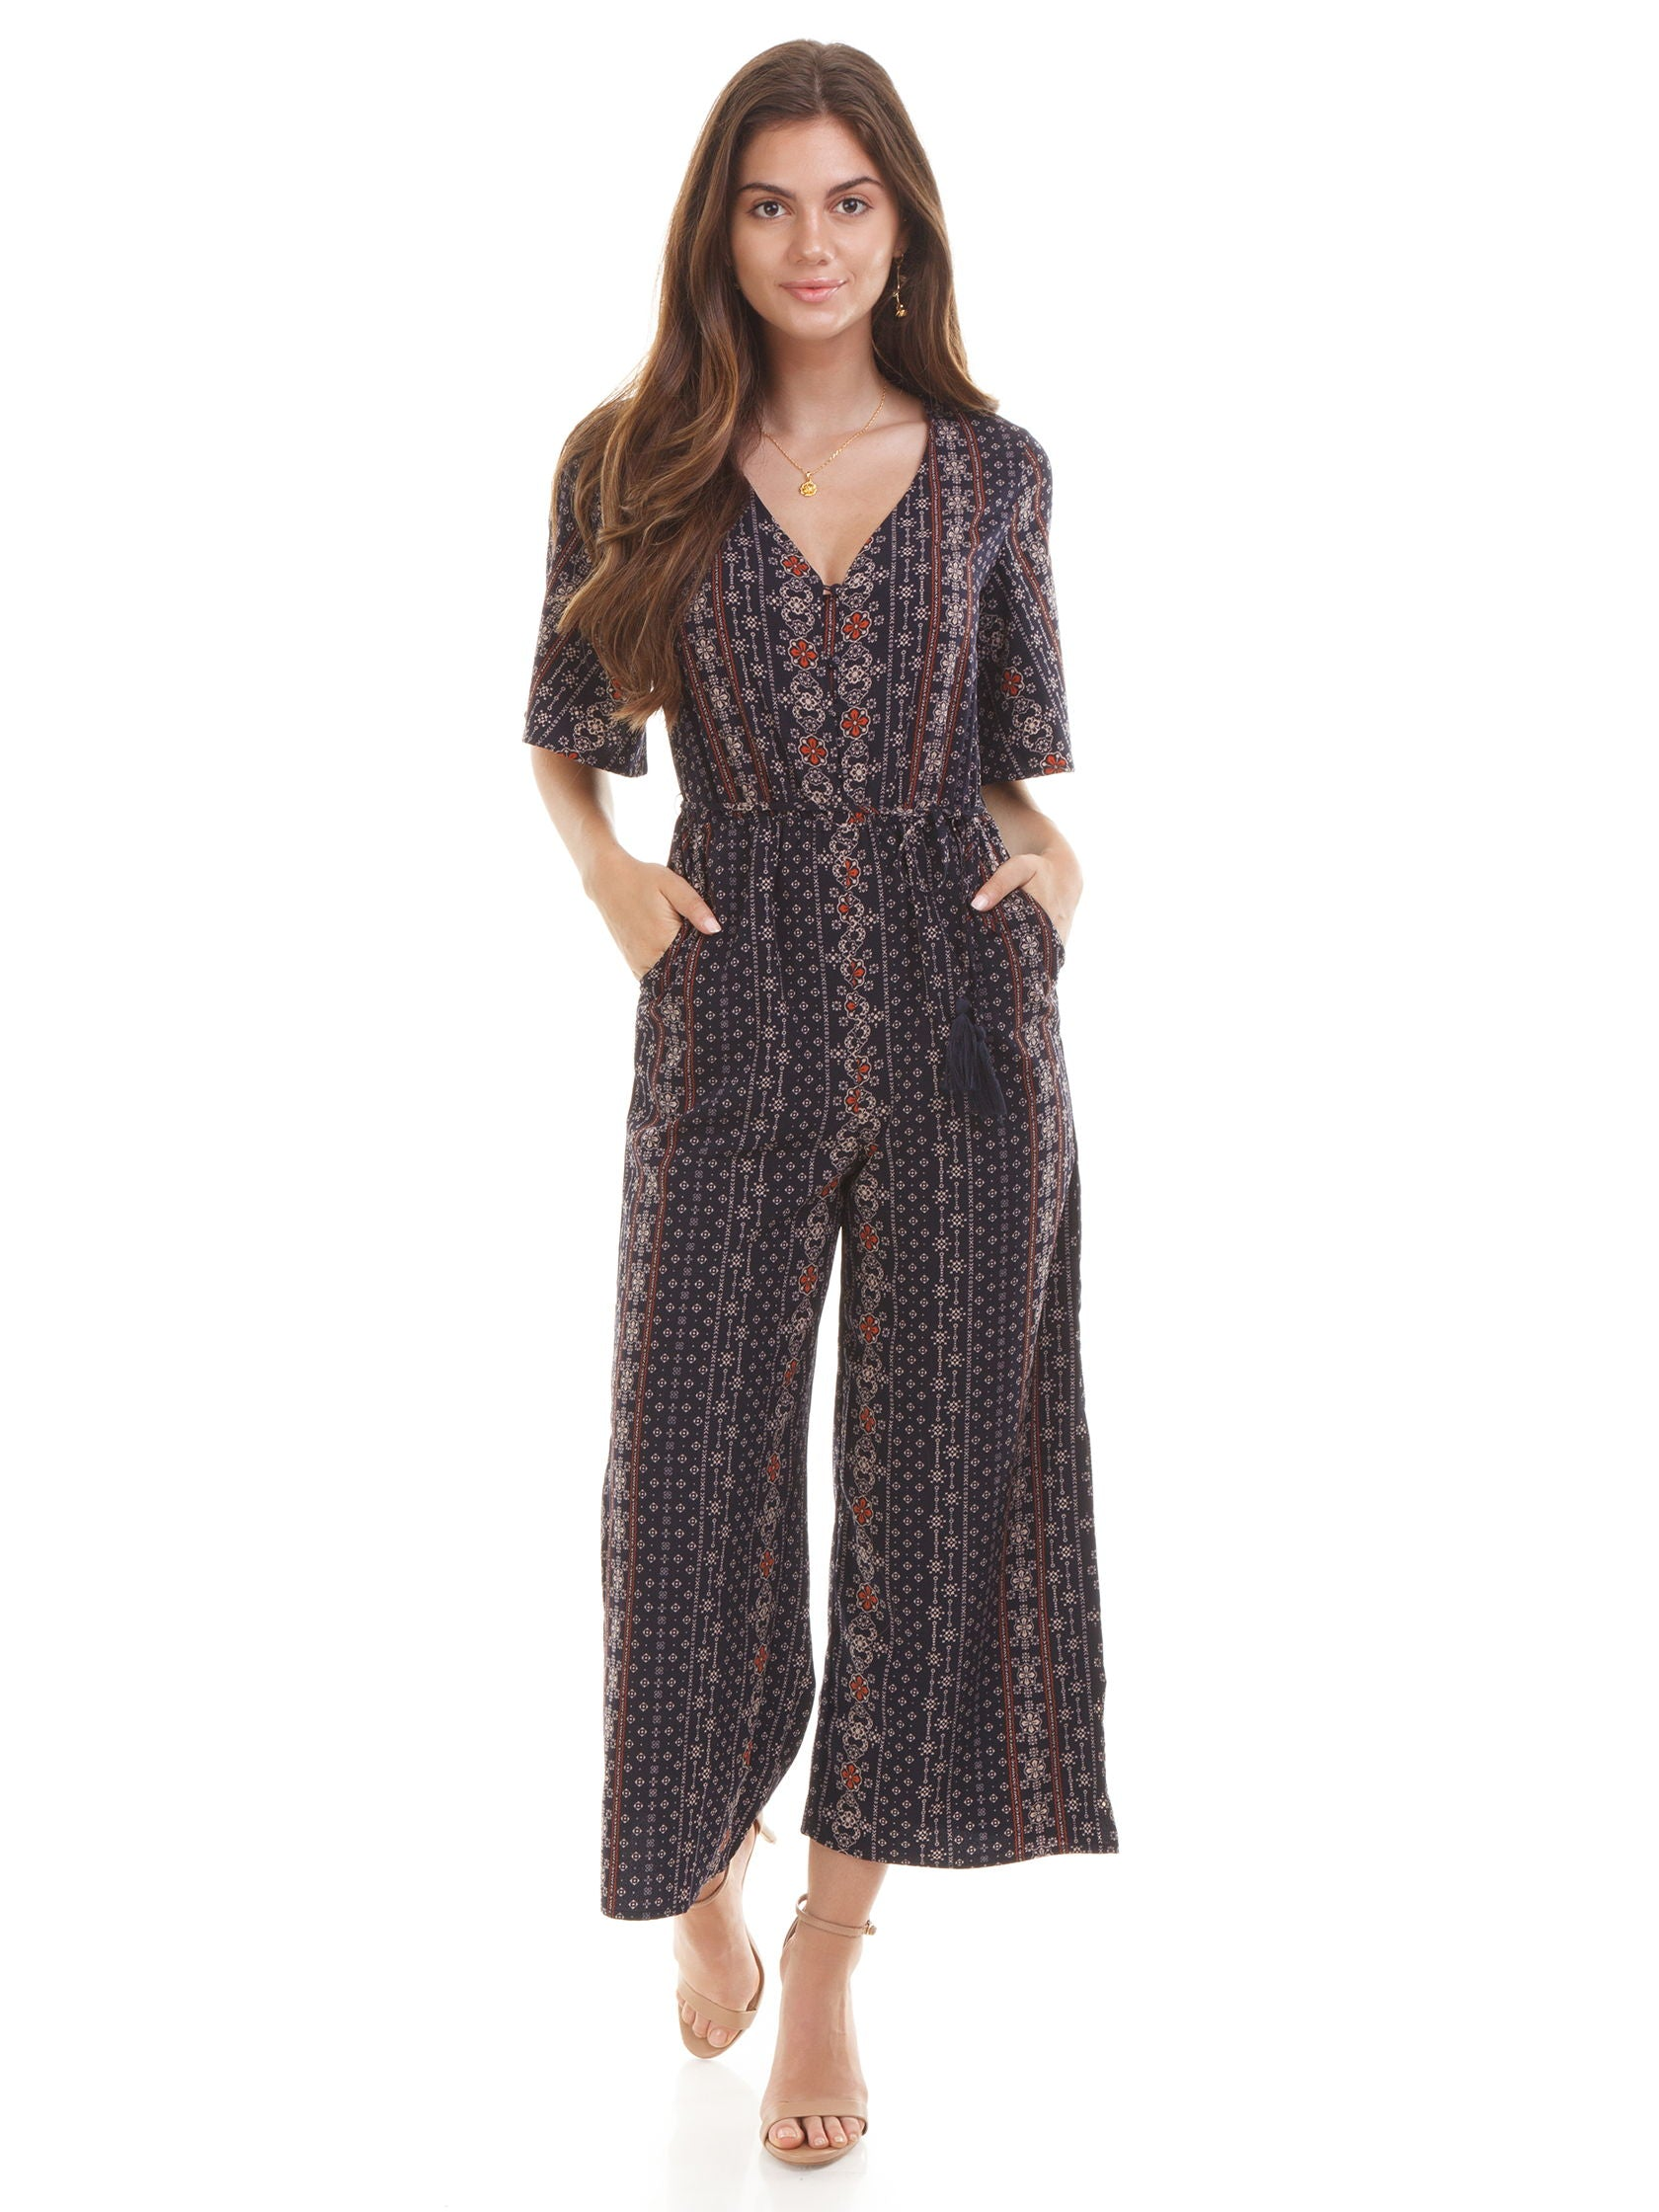 Girl outfit in a jumpsuit rental from Moon River called Flutter Sleeve Wide Leg Jumpsuit